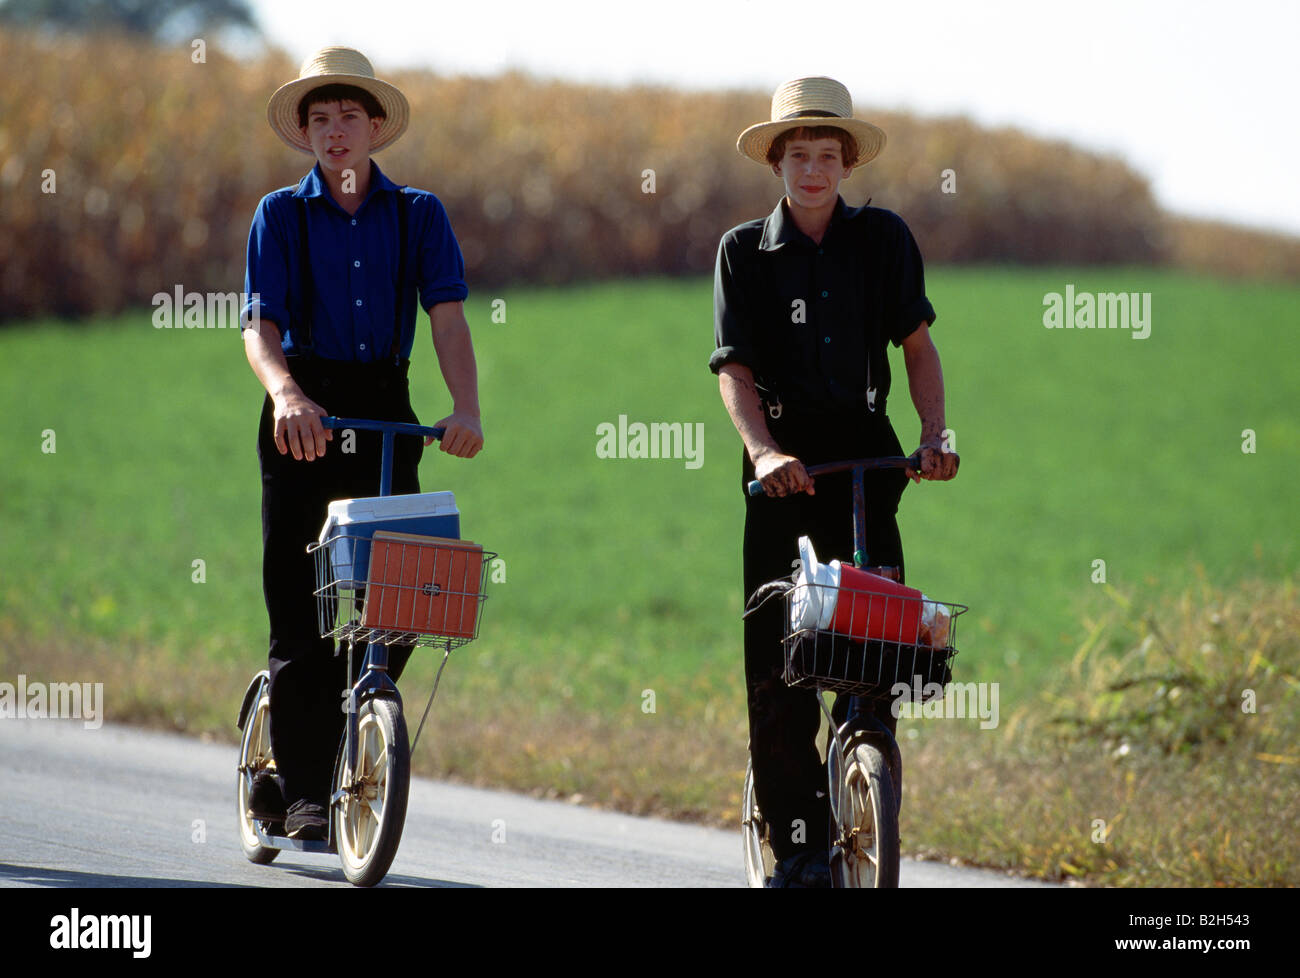 Amish children in traditional plain clothing on scooters for Lancaster county motors used